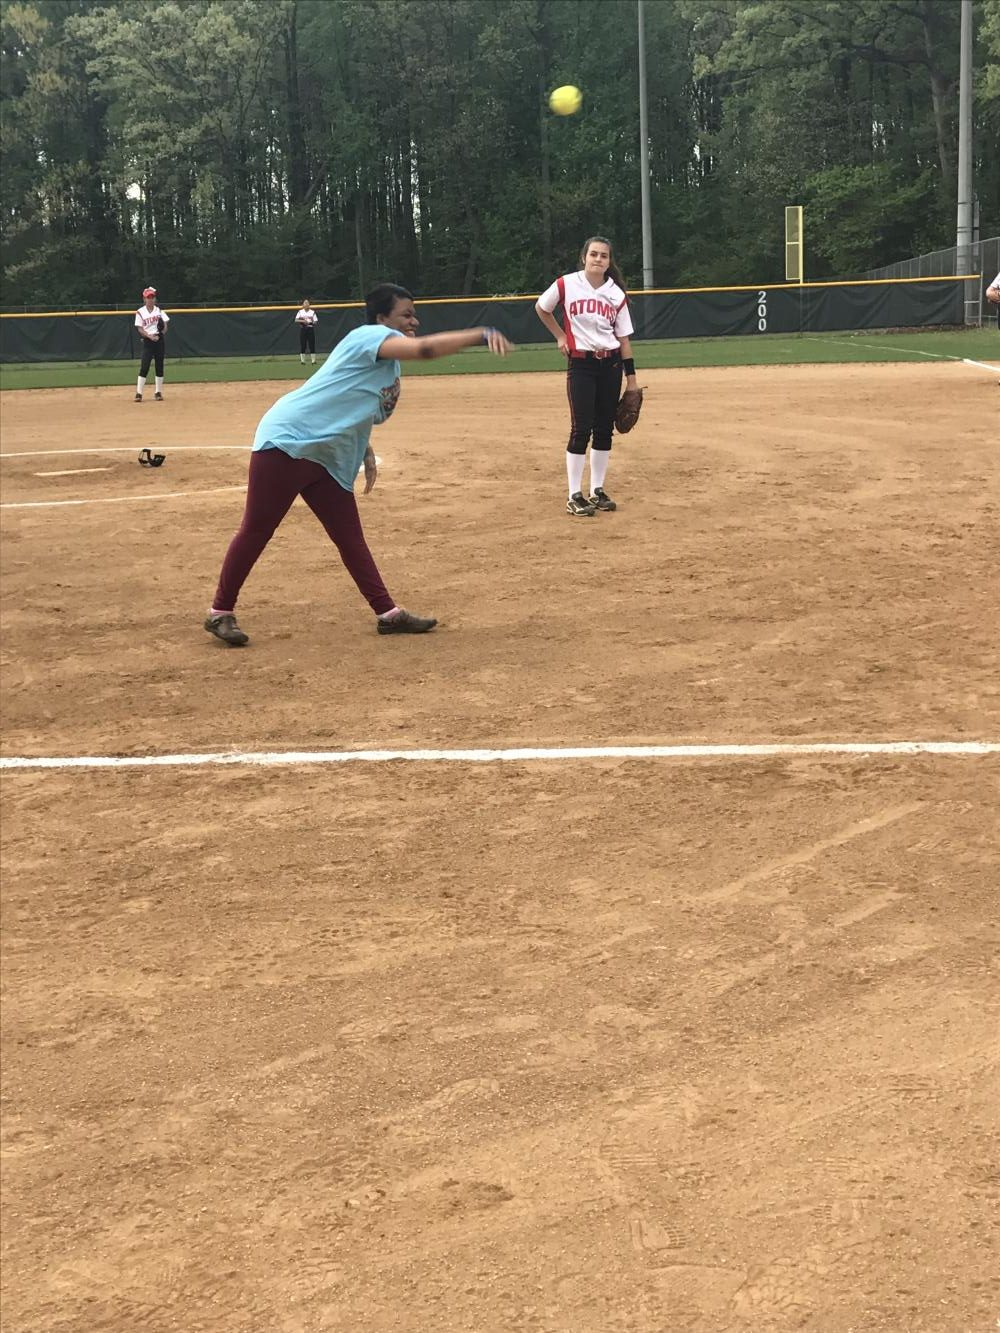 Senior Brooke Mahoney throws out the opening pitch in the game against the Spartans on April 21.